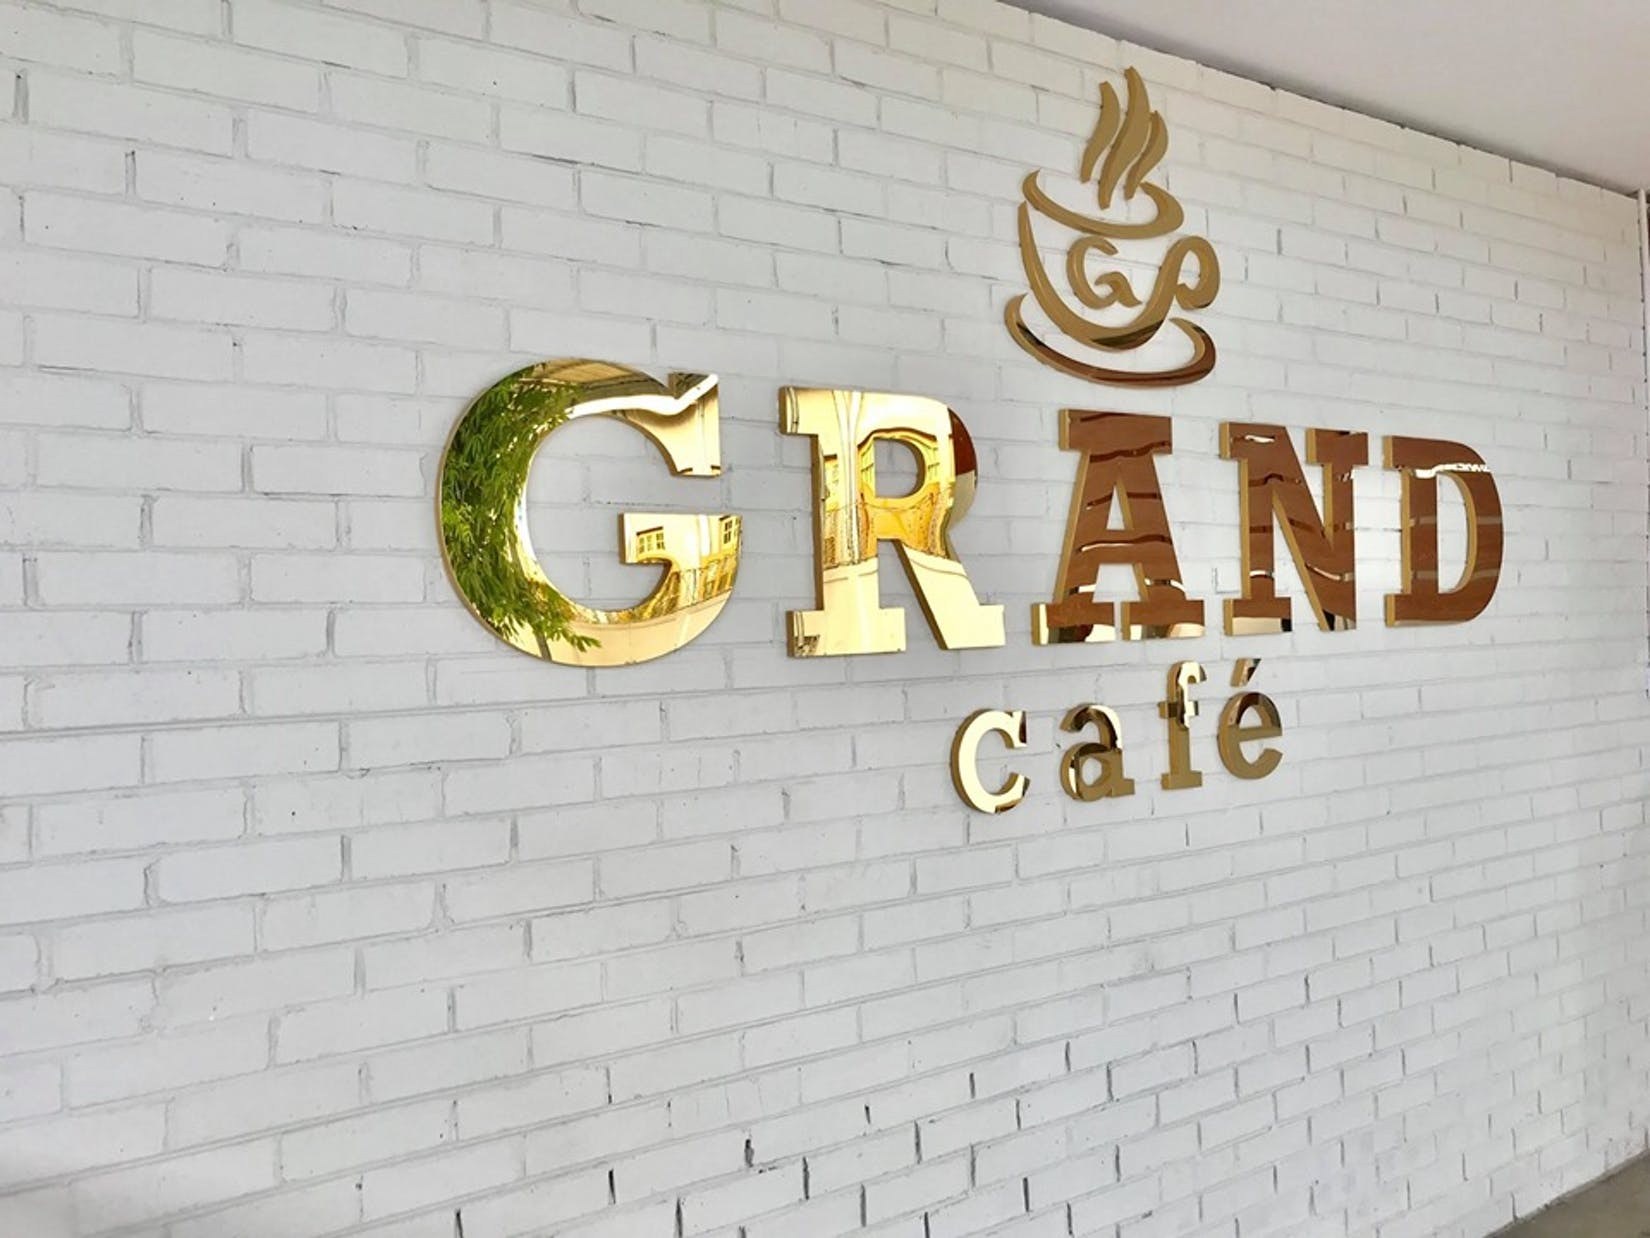 Grand Cafe Mandalay | yathar